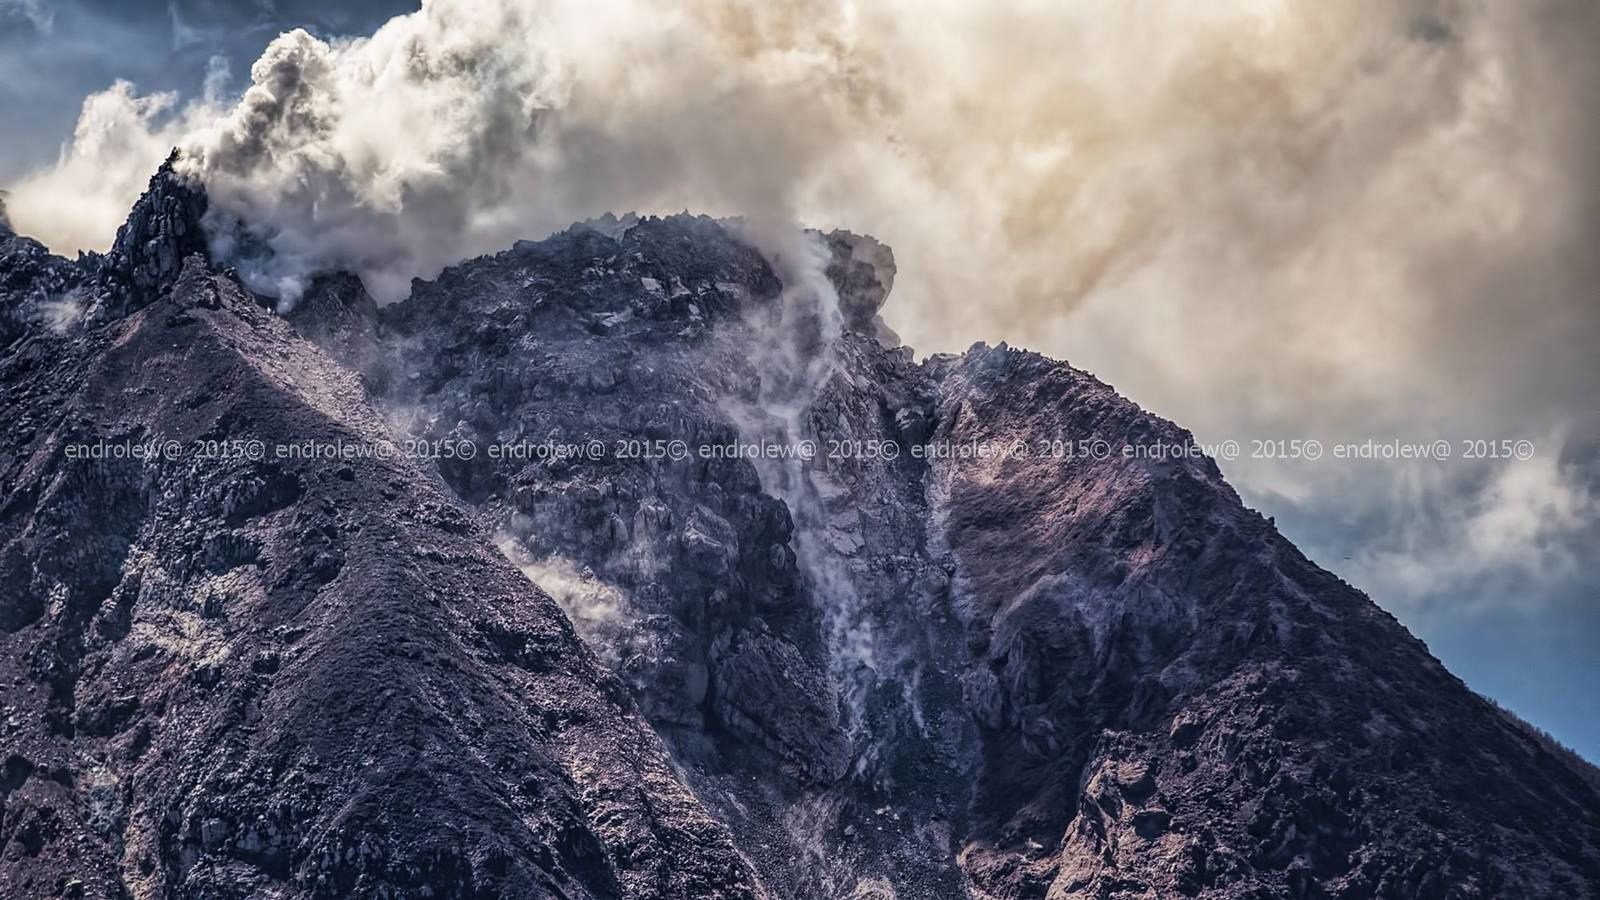 Le dôme instable du Sinabung, le 18.06.2015 / 14h16 - photo endrolew@